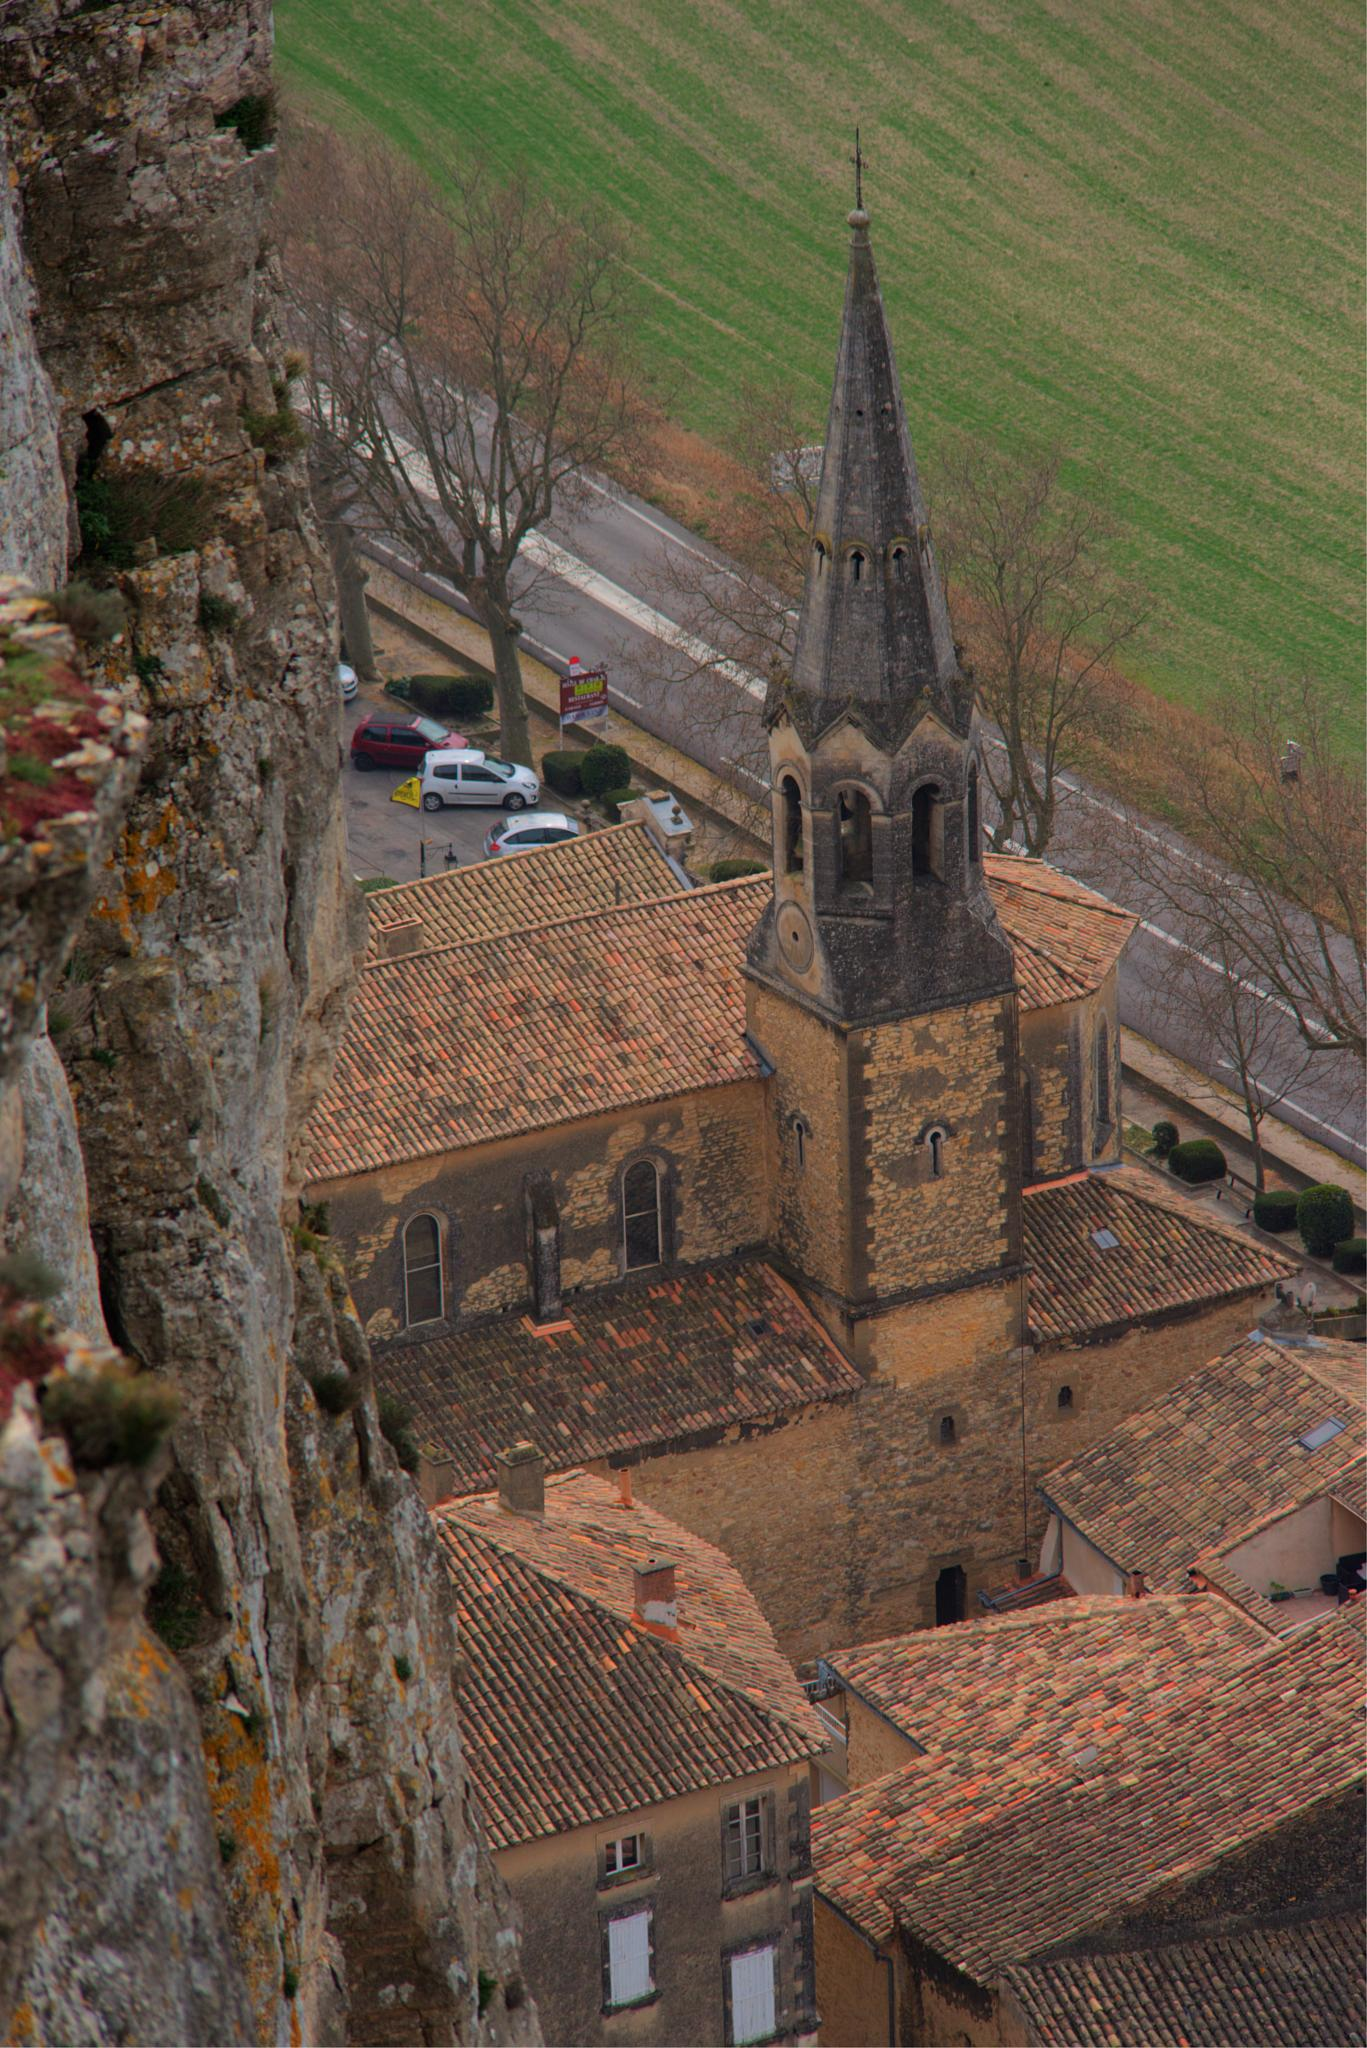 Eglise de Mornas by bernardf142